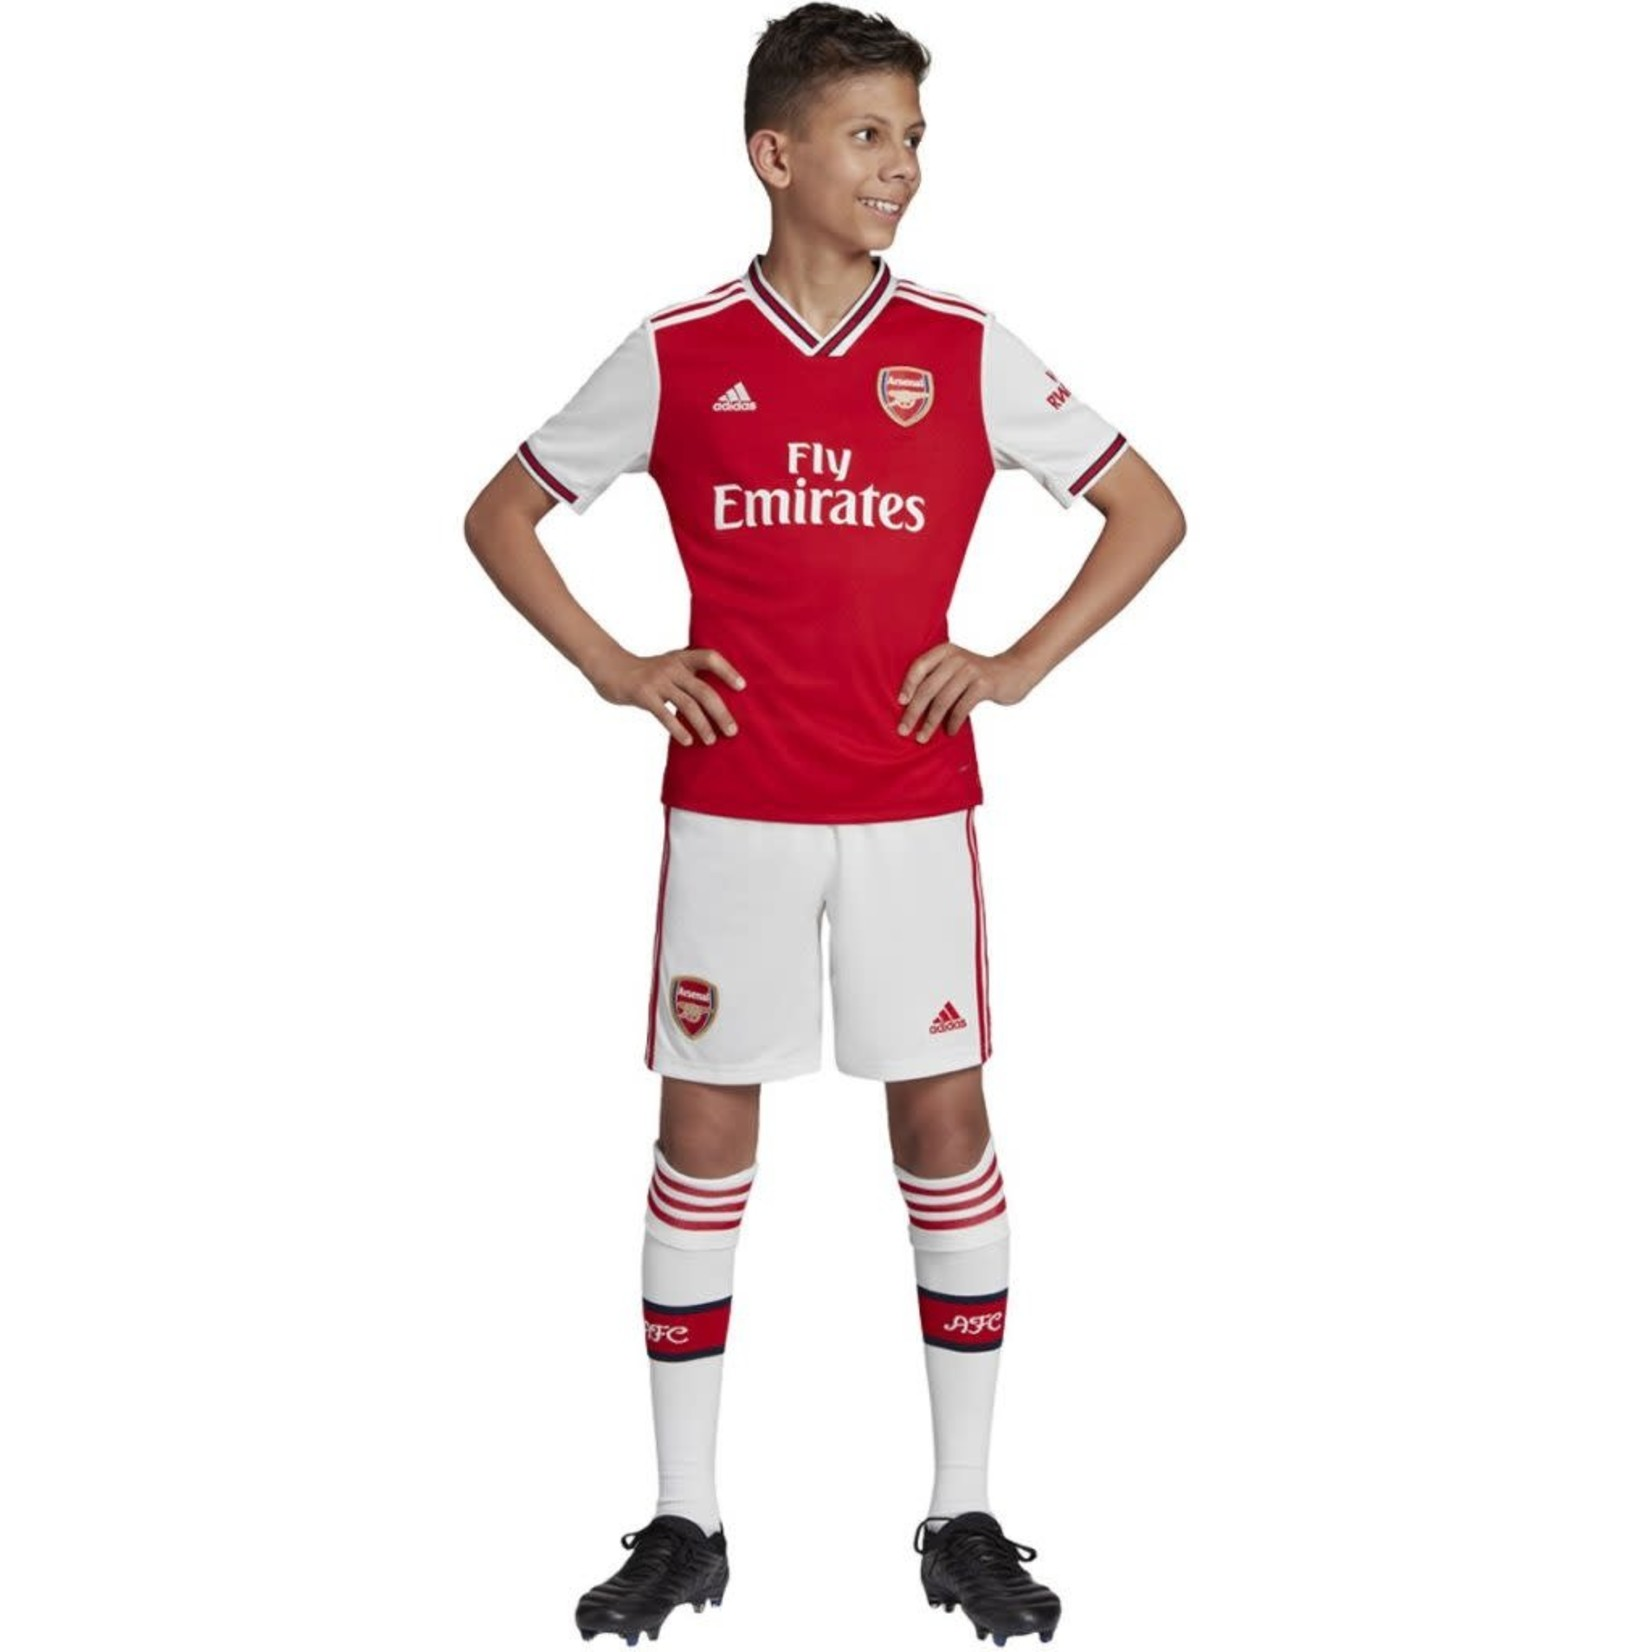 ADIDAS ARSENAL 19/20 HOME JERSEY YOUTH